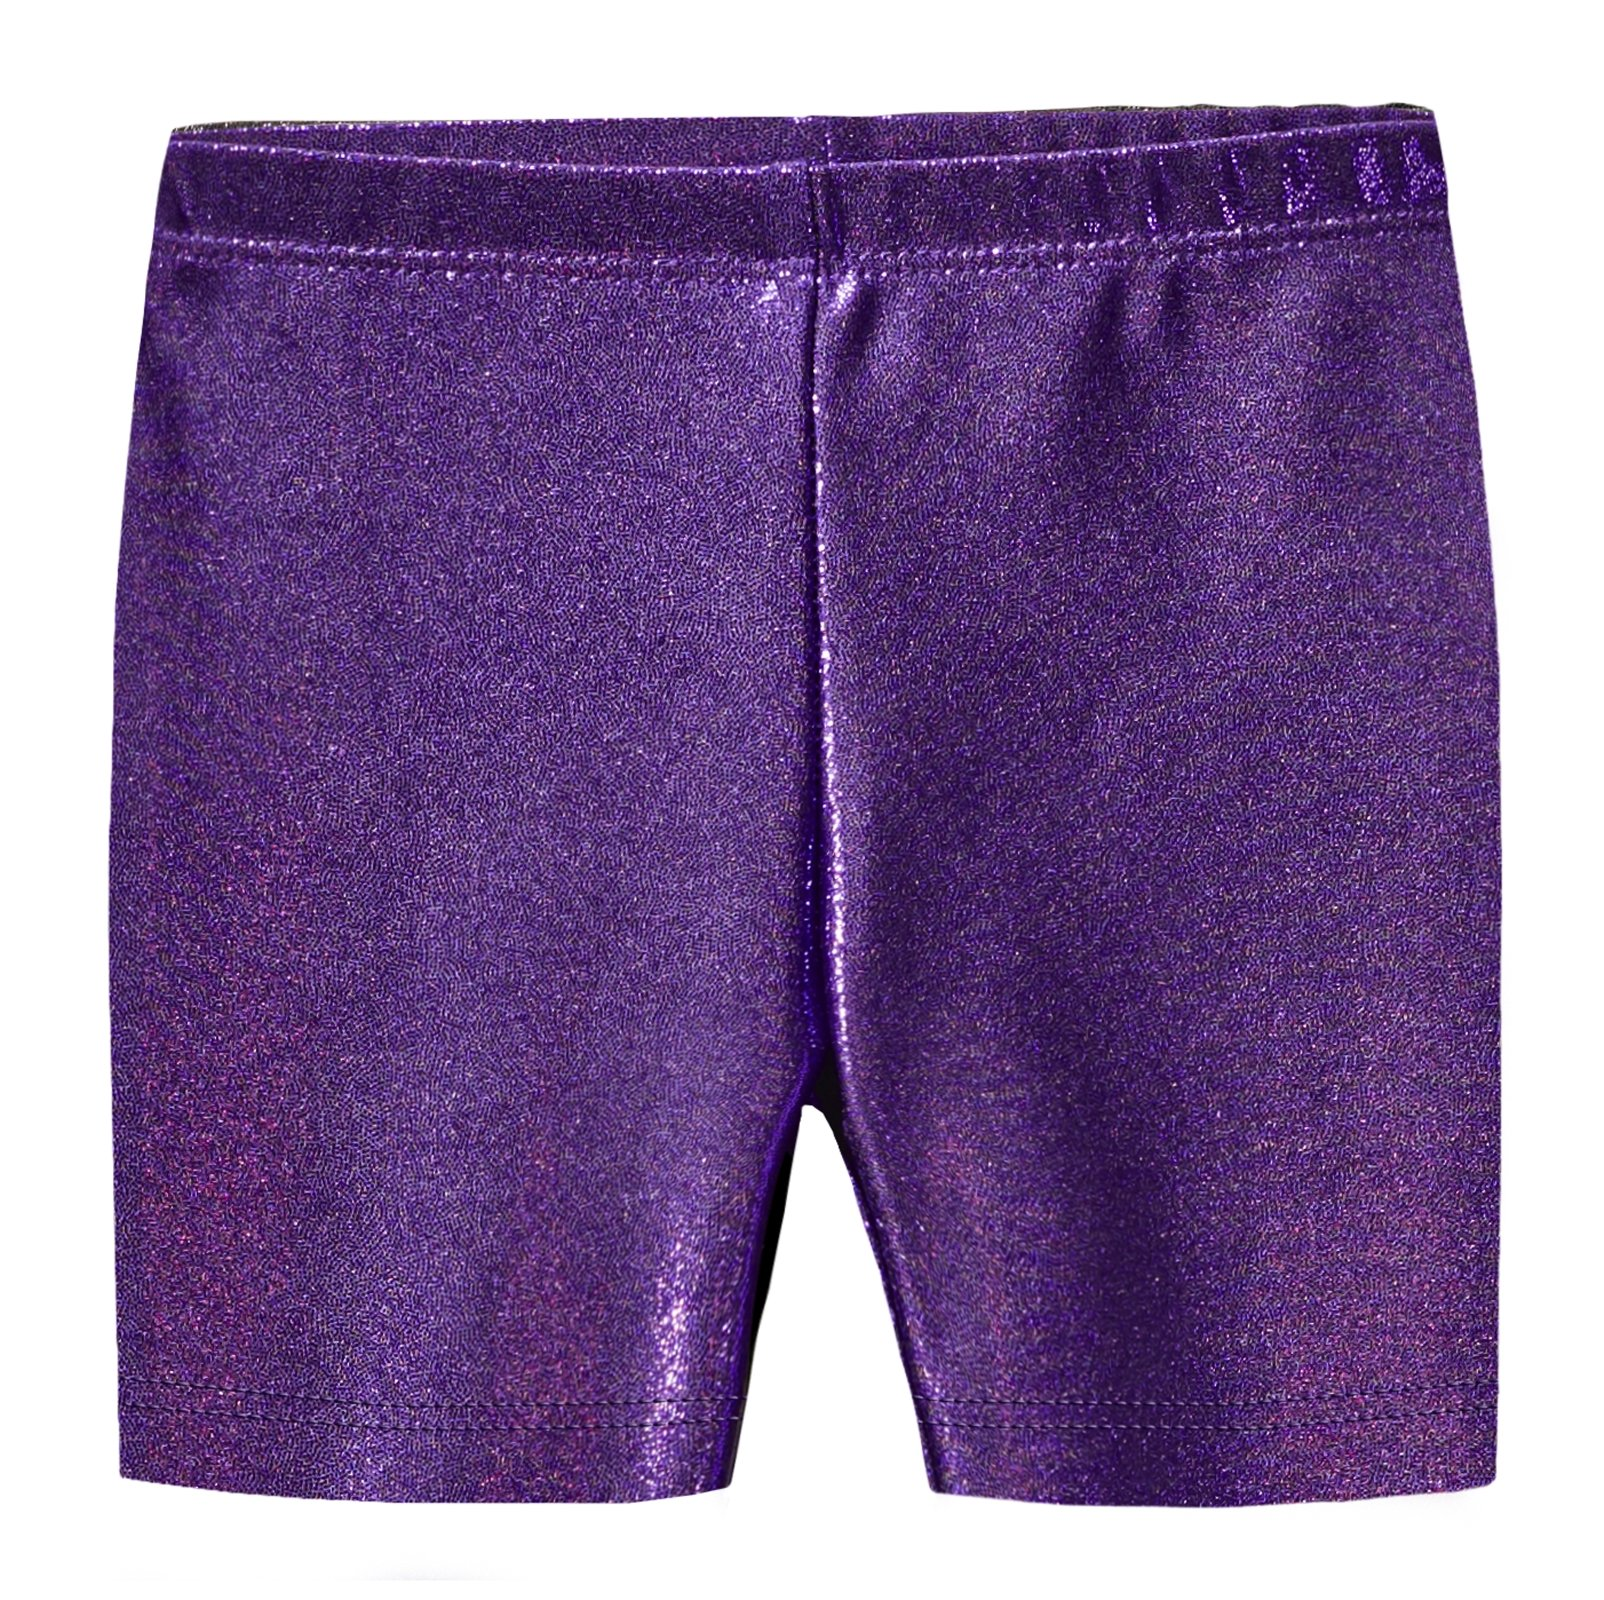 City Threads Girls Underwear Novelty Bike Shorts for Play School Uniform Dance Class and Under Dresses, Sparkly Purple, 4T by City Threads (Image #1)